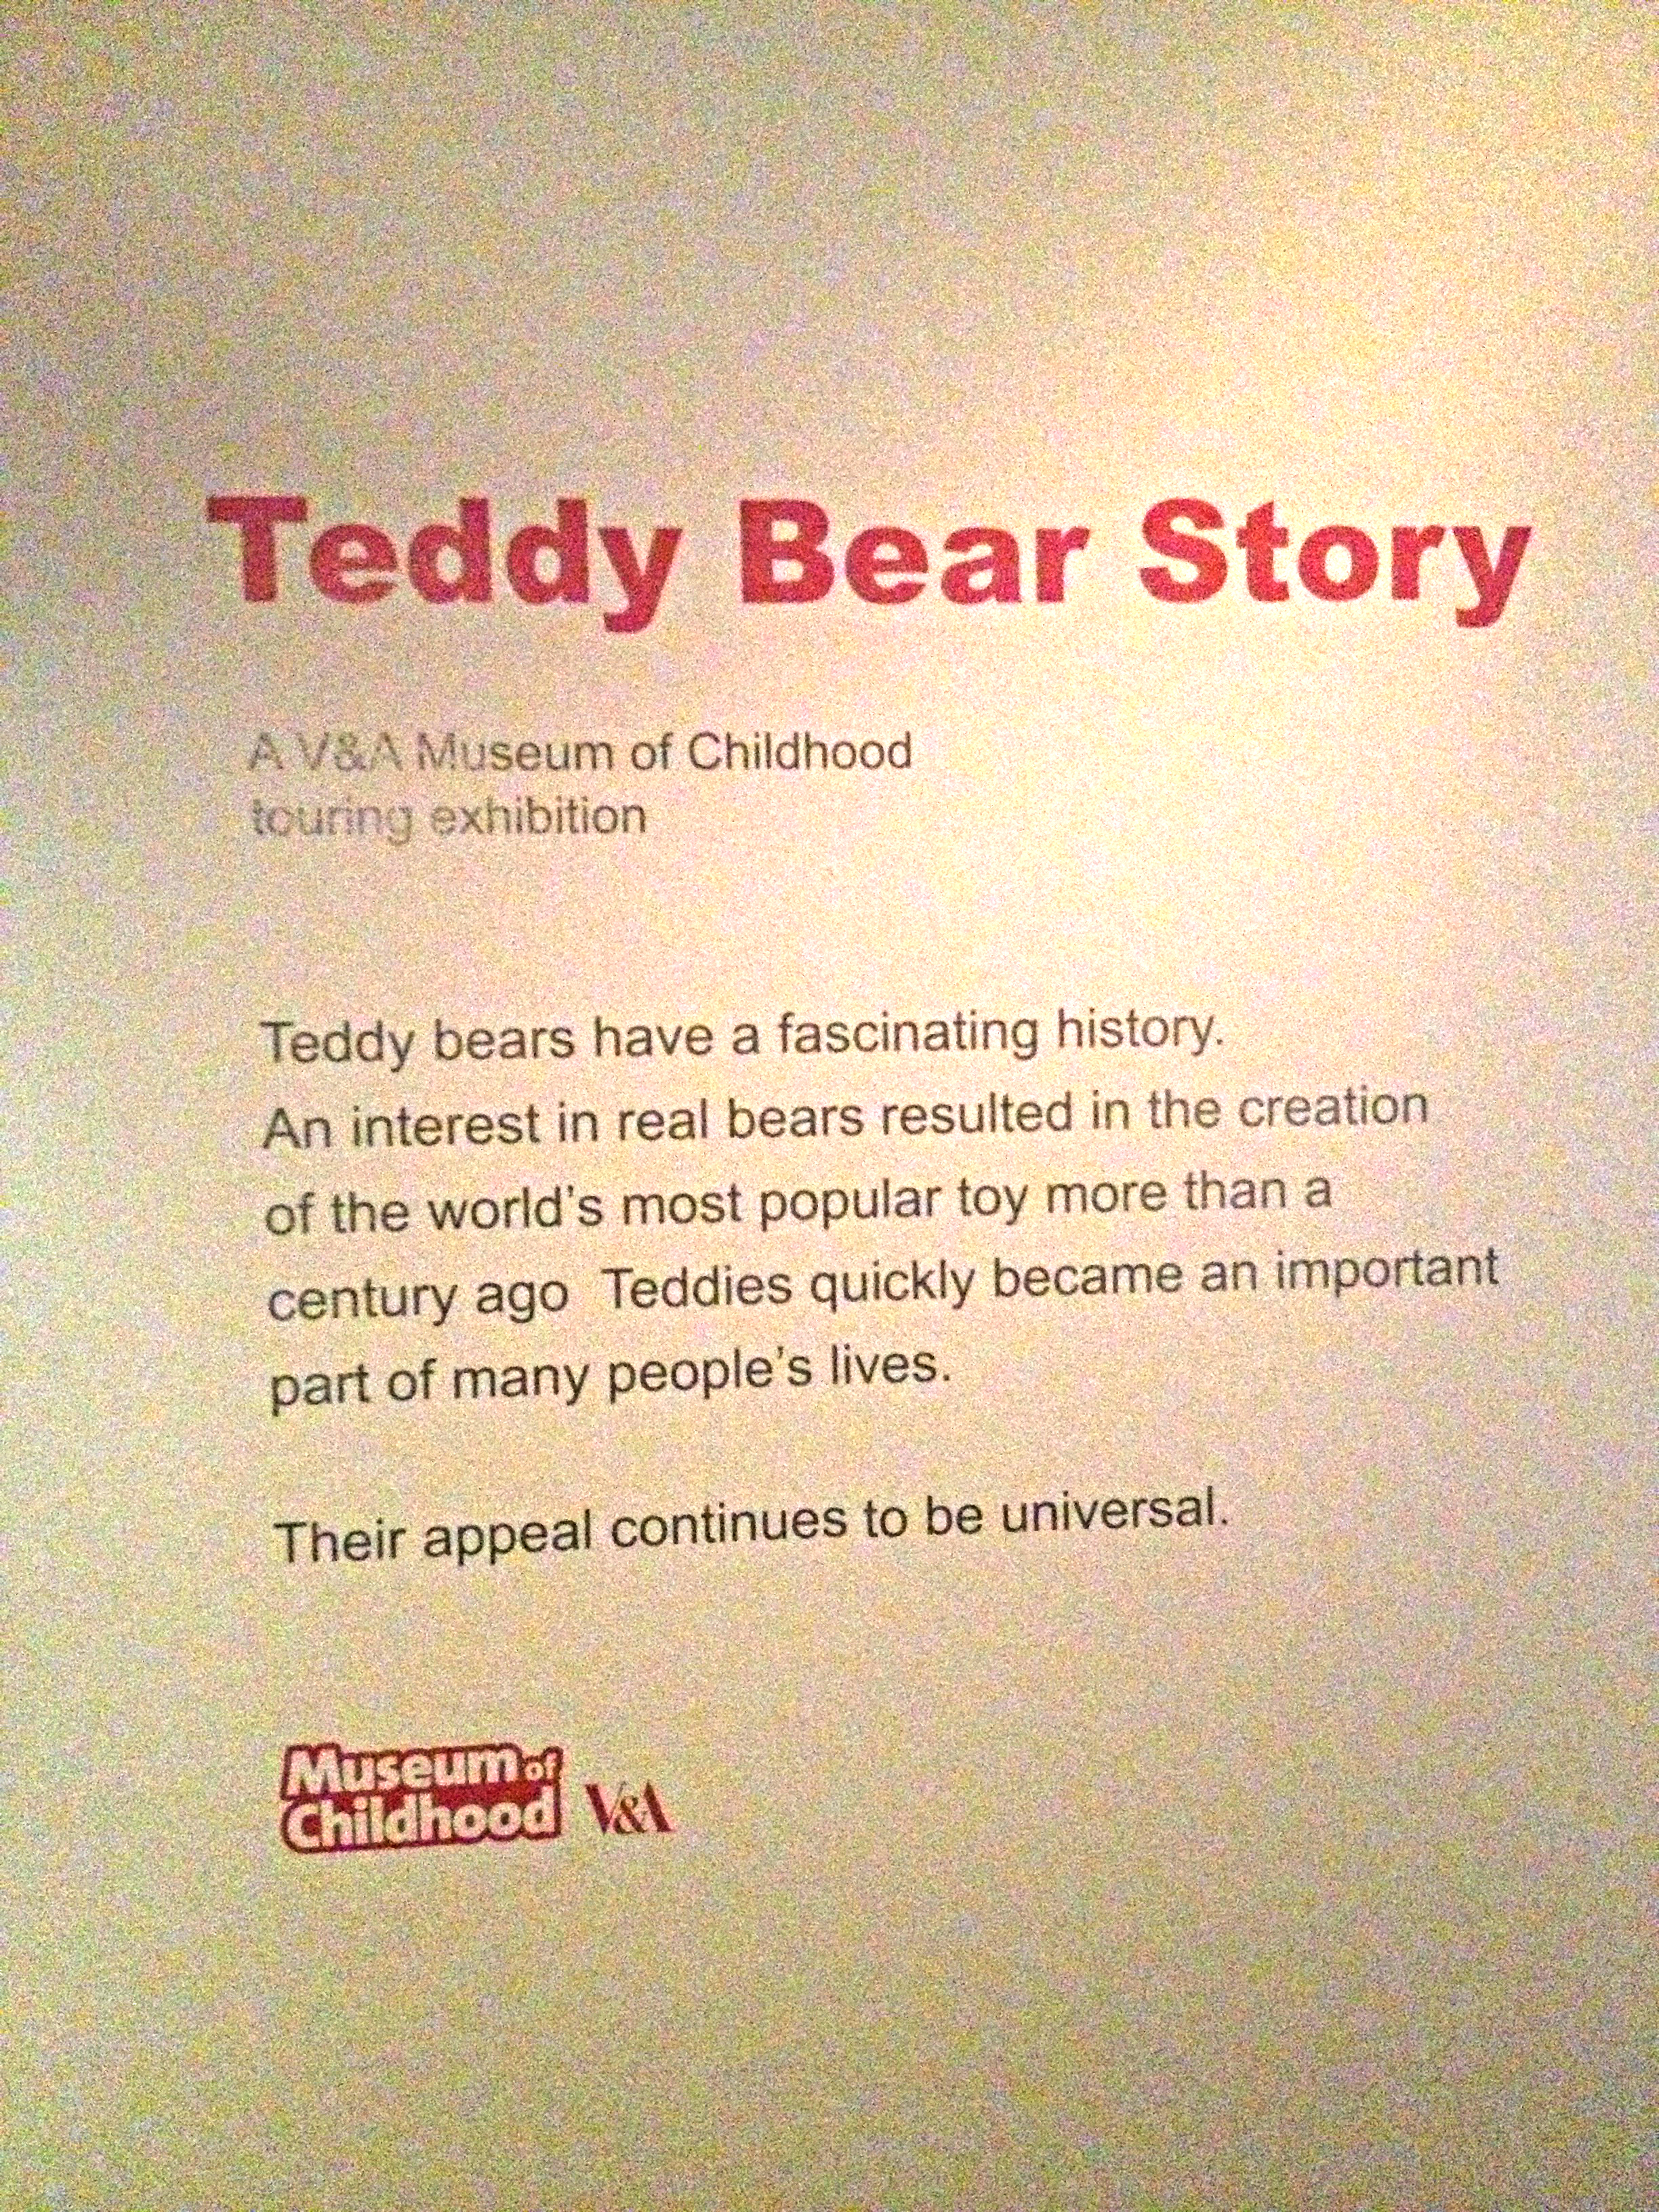 Neal Layton news » Blog Archive » The Teddy Bear Story